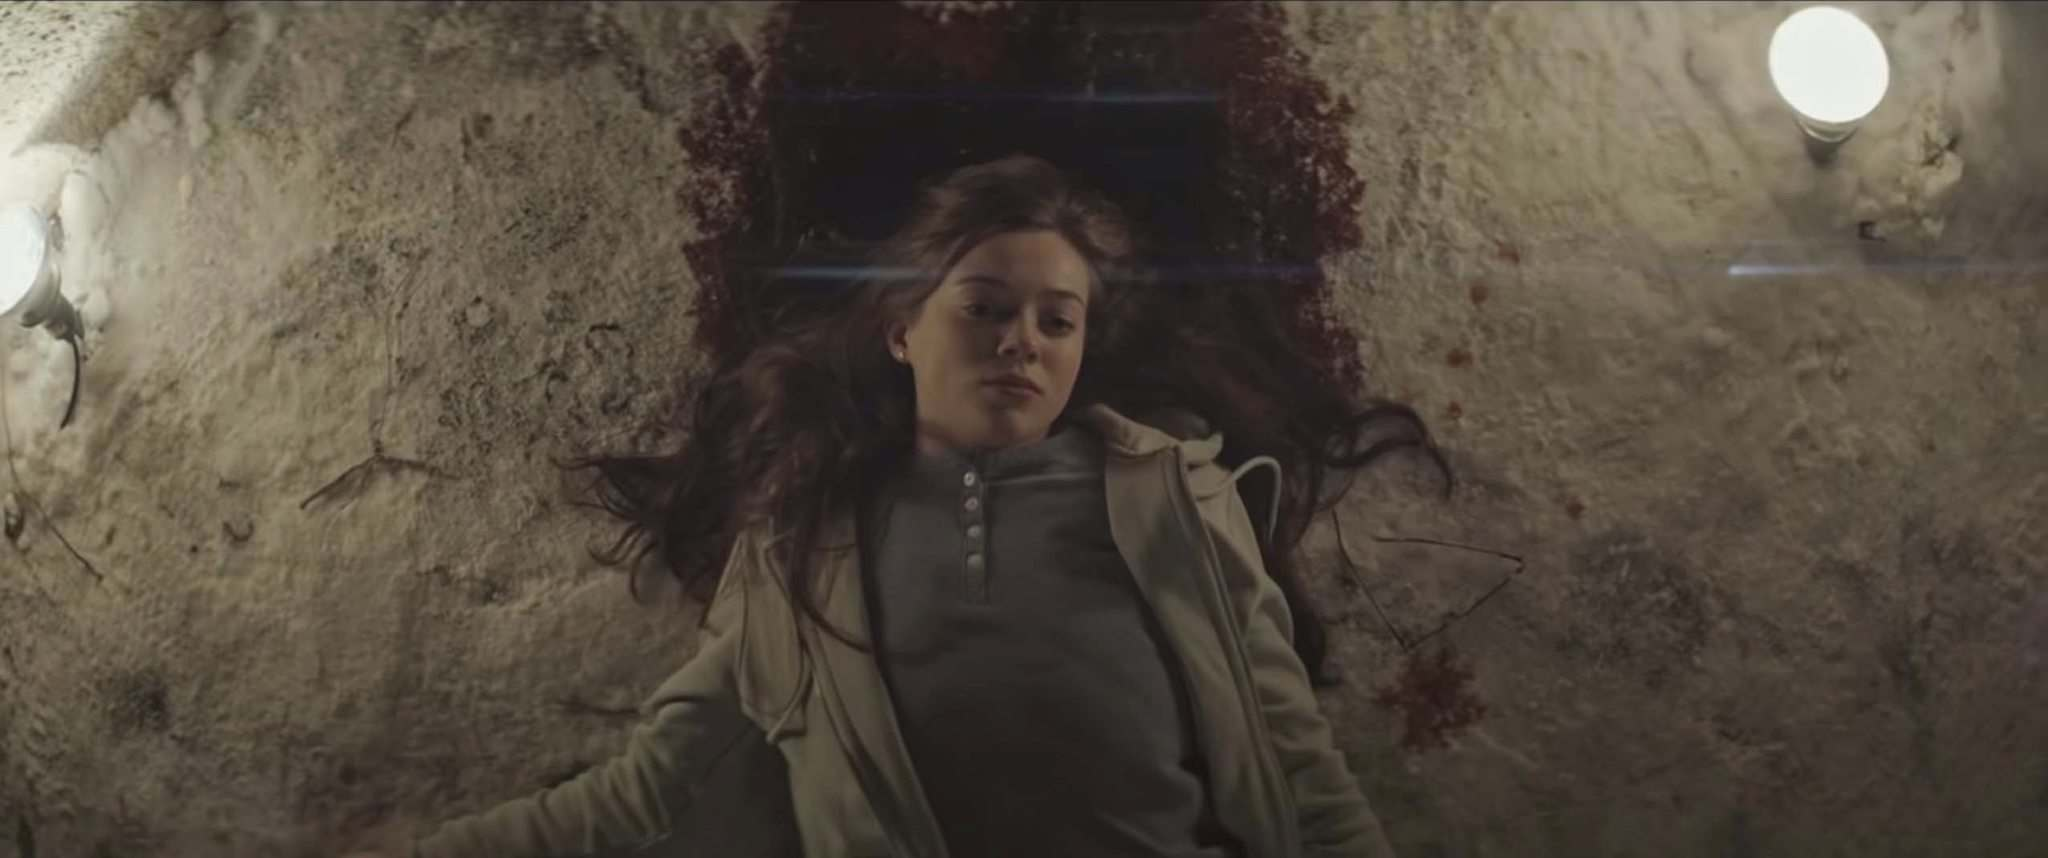 Megan Best's character falls to her death in Seance. (Dark Castle Entertainment)